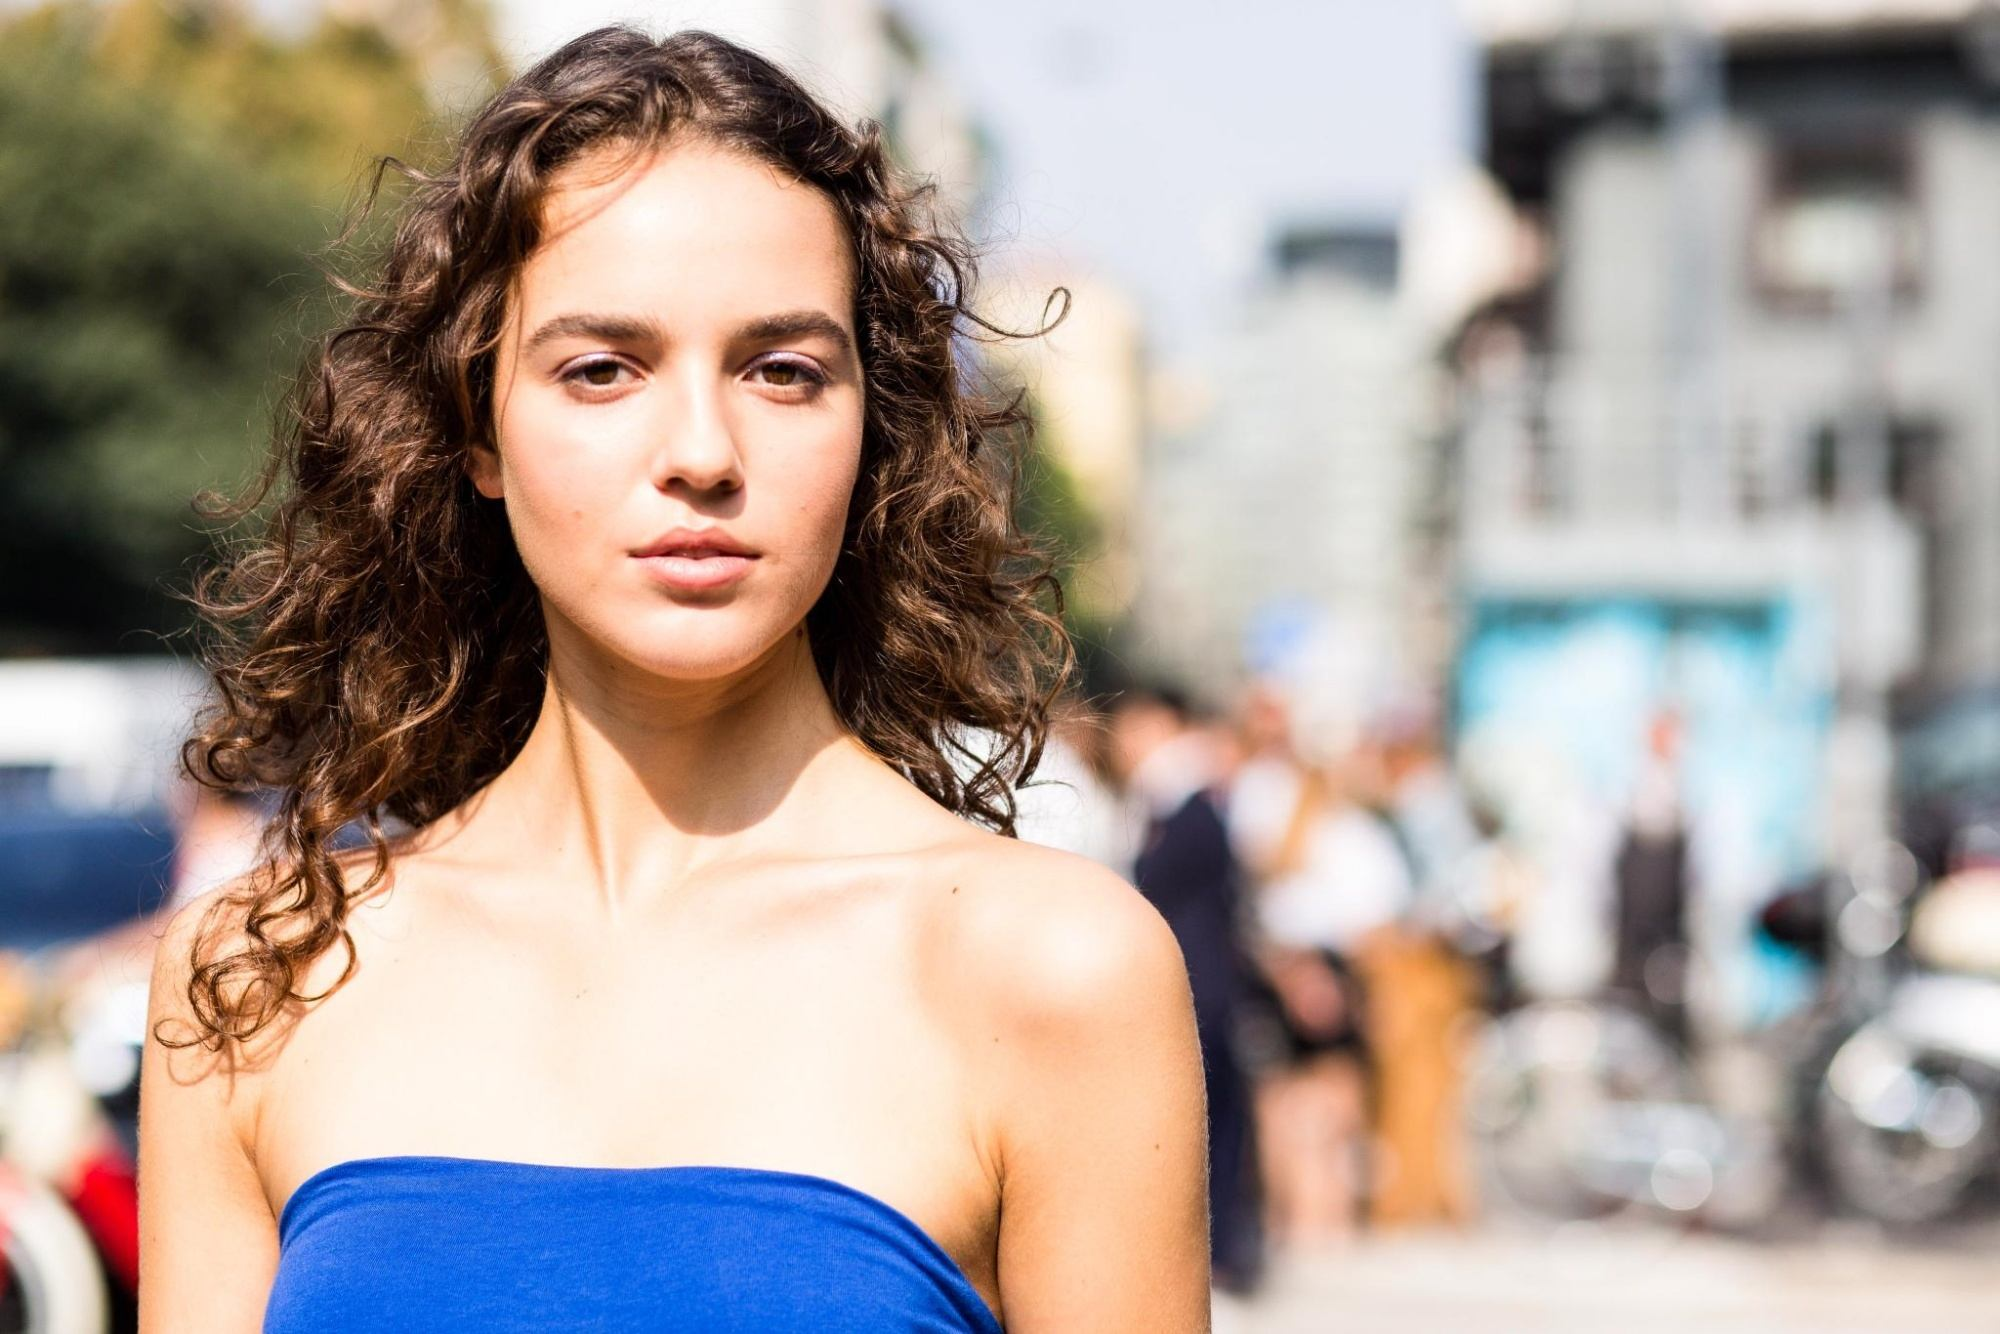 Caucasian woman with long brown curly hair wearing a blue tube top outdoors